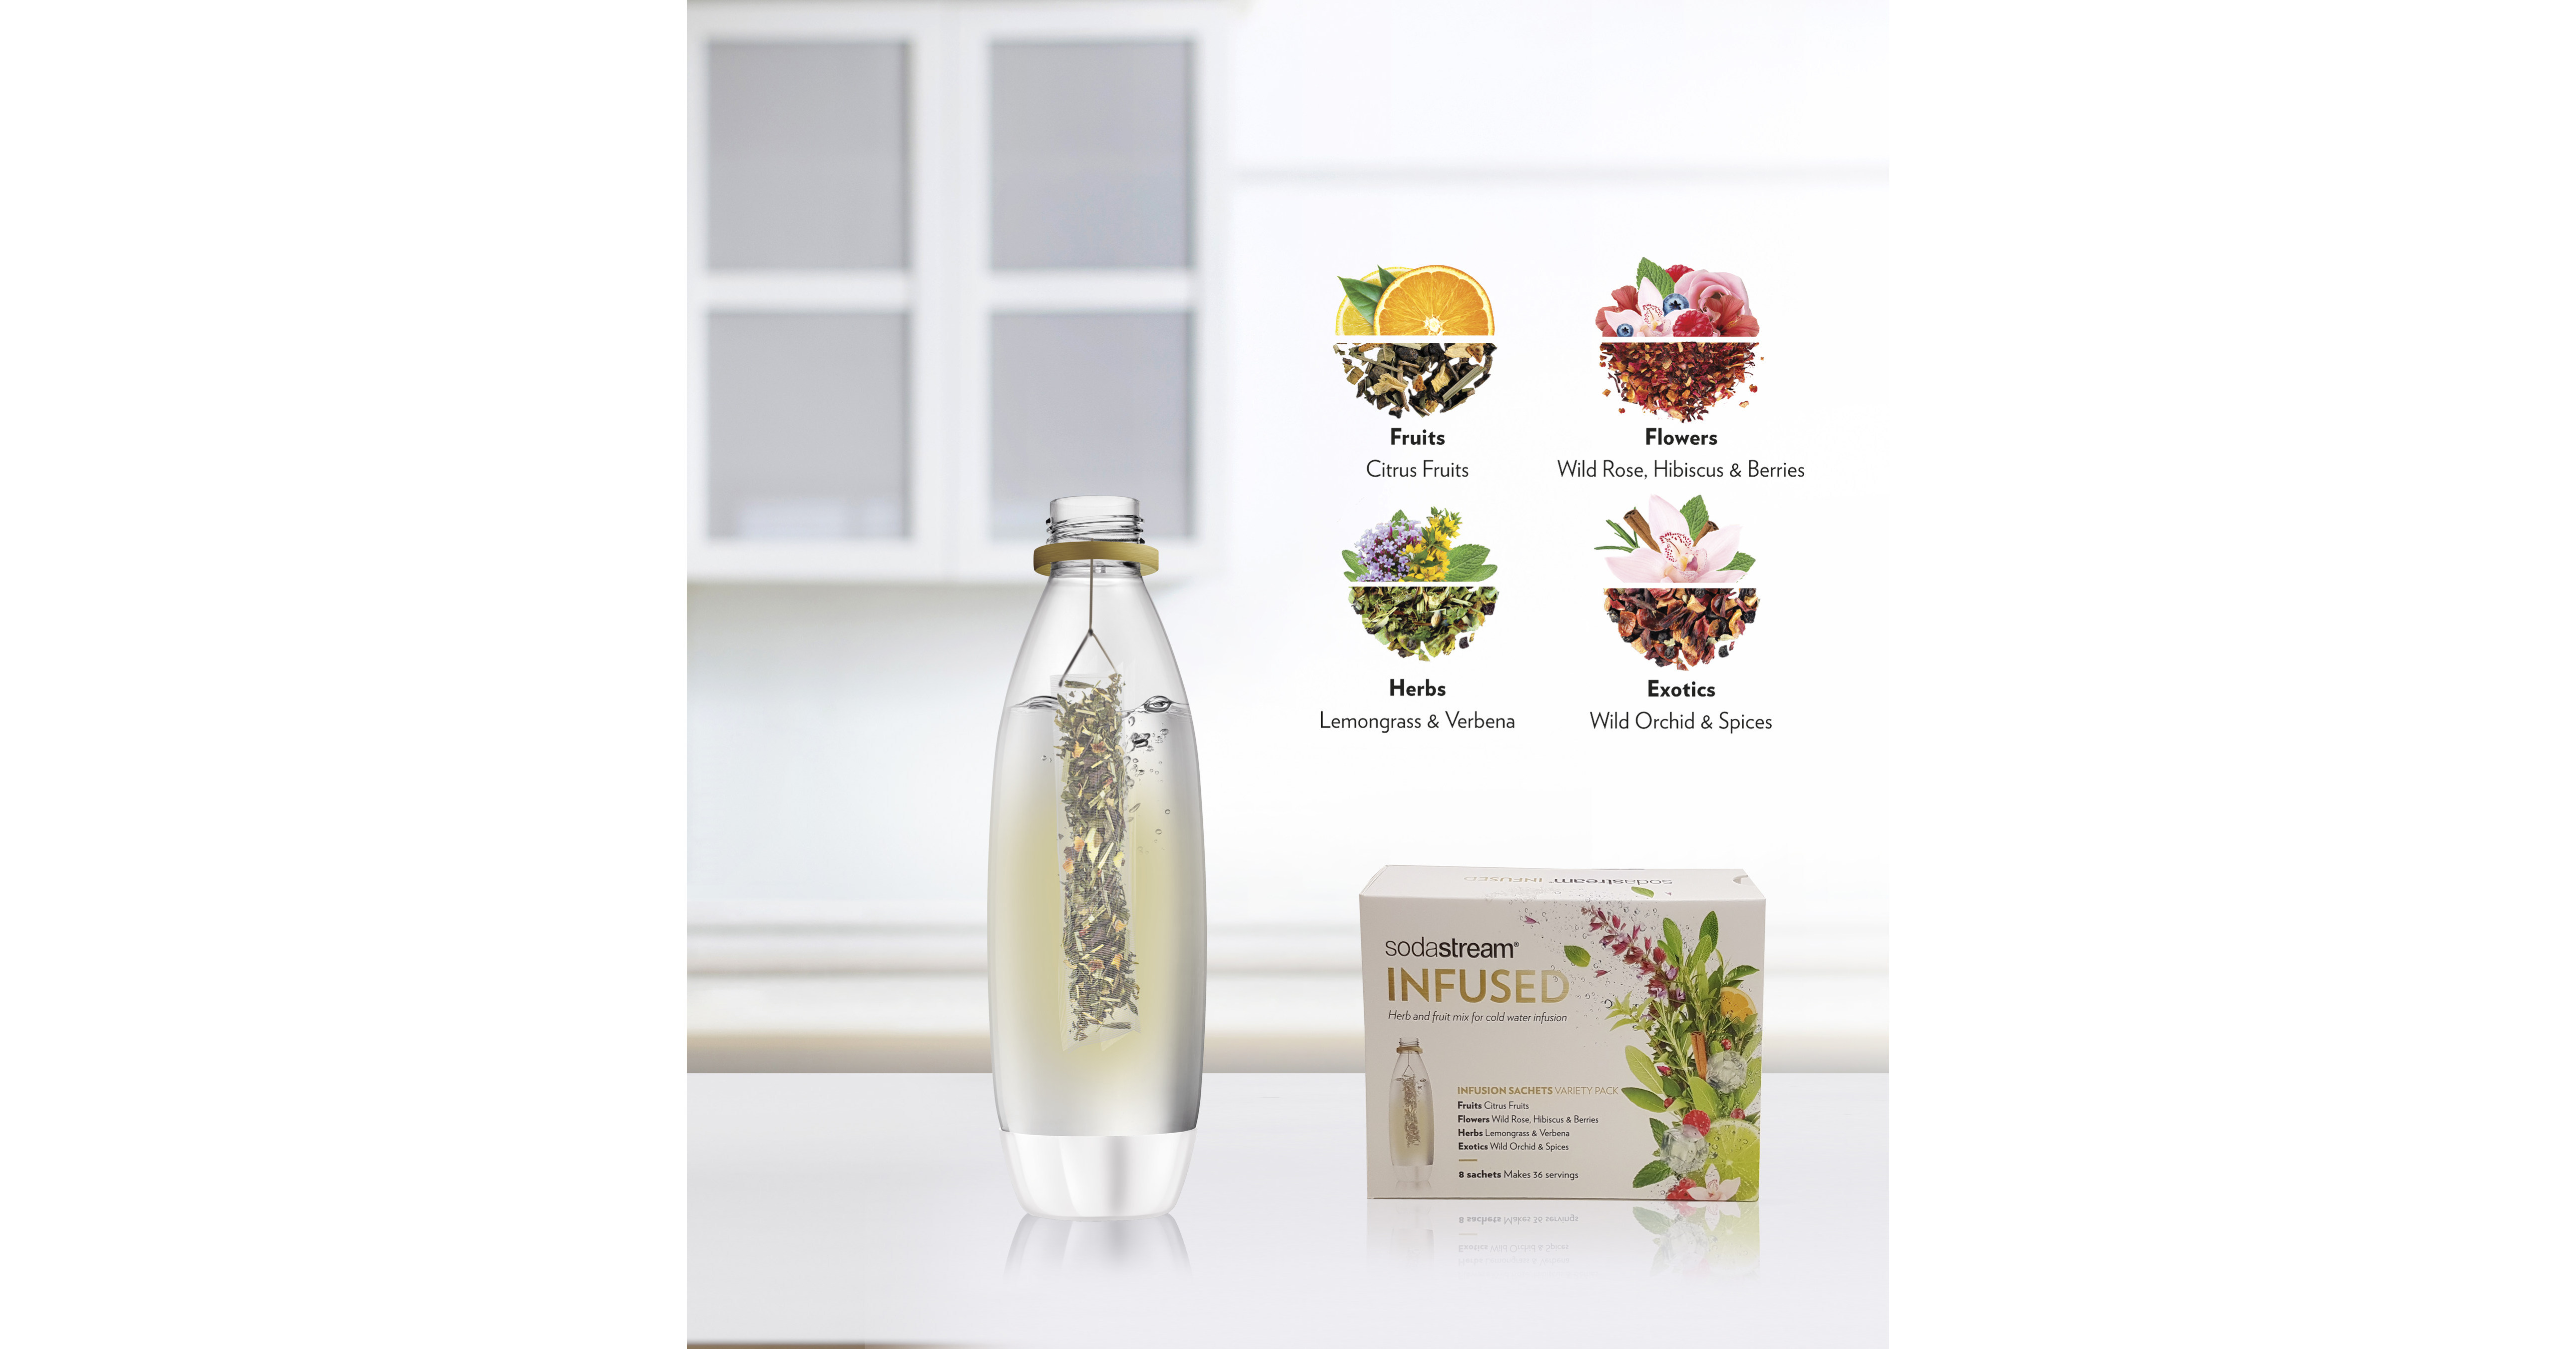 Sodastream Unveils Biggest Innovation And Introduces A Completely New Category With Its Infusions Line photo